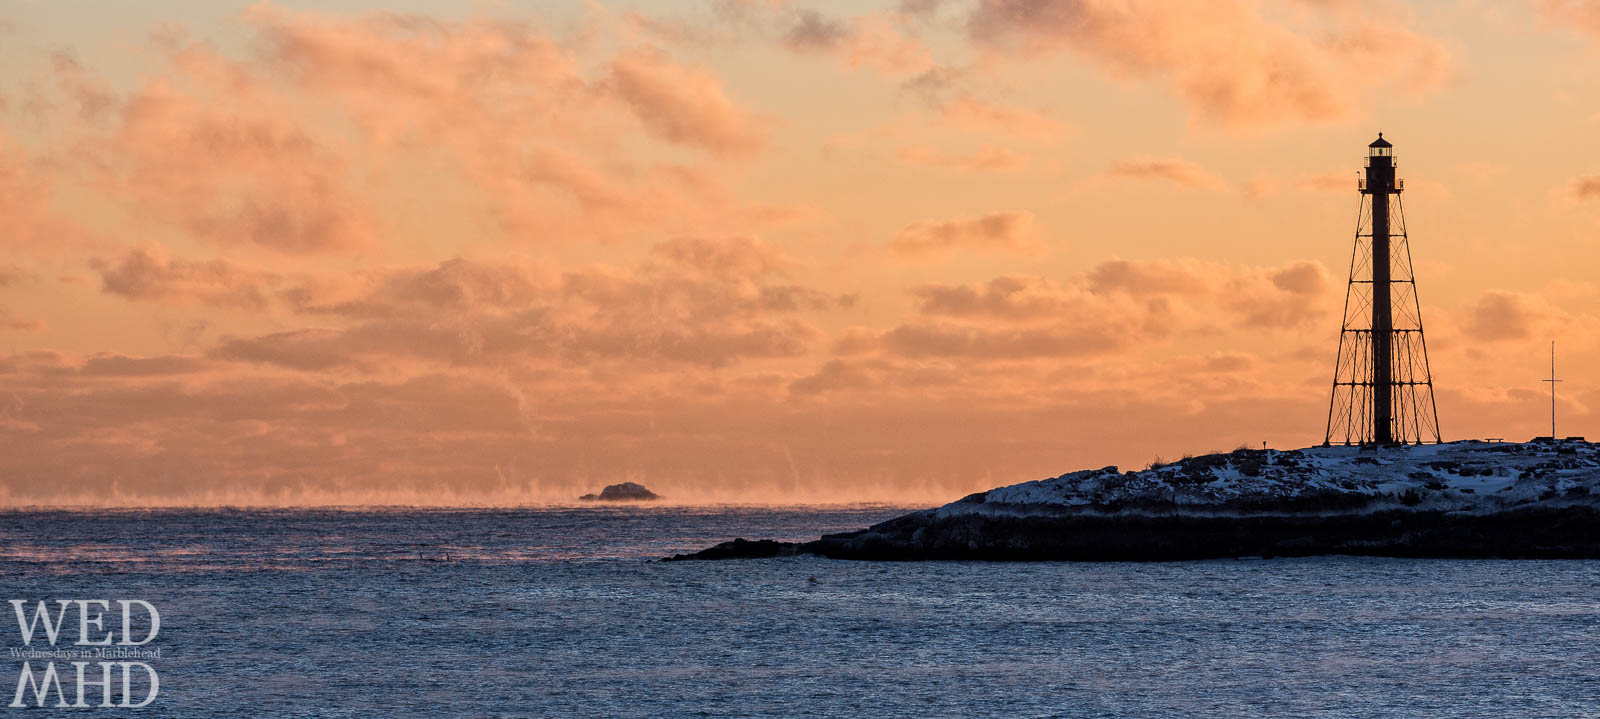 Sea Smoke and Orange Clouds at Marblehead Lighthouse